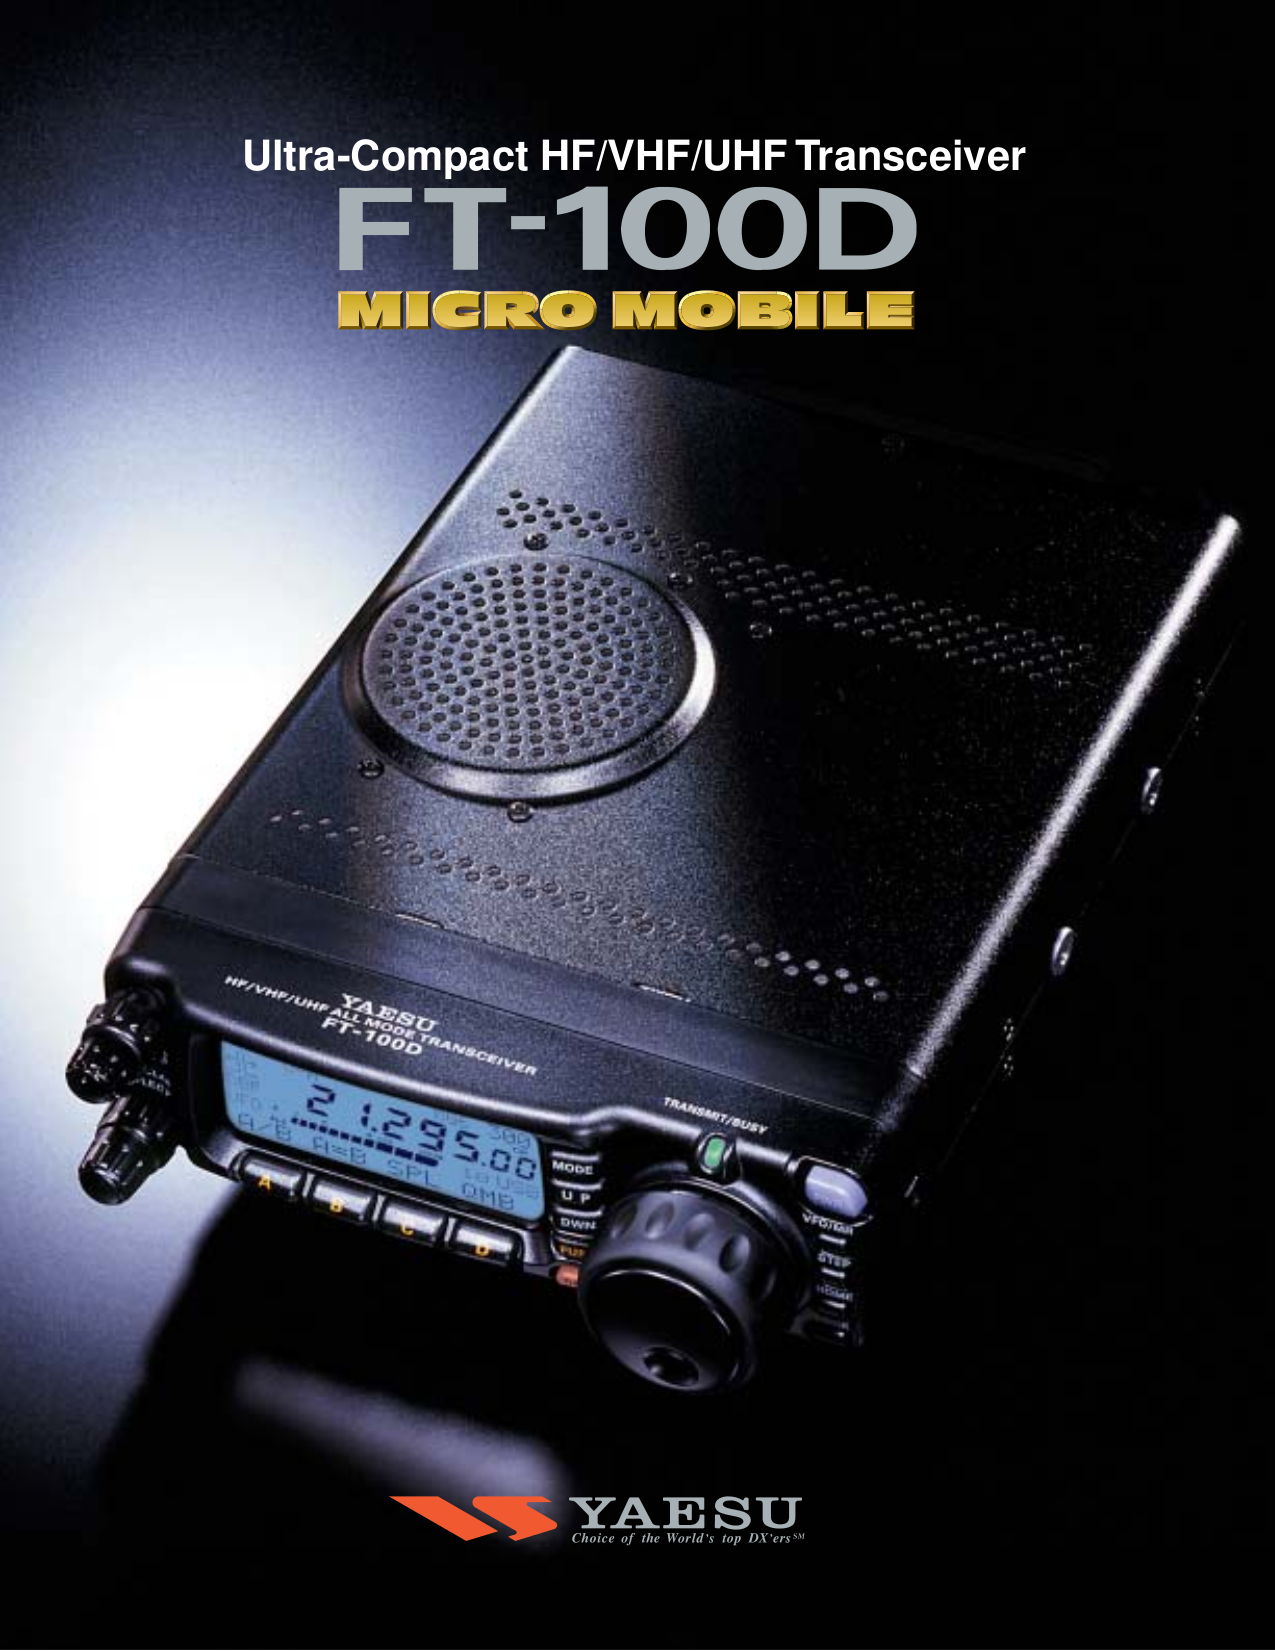 Pdf manual for yaesu other ft 897d hf transceiver for Roca 20 20f manual